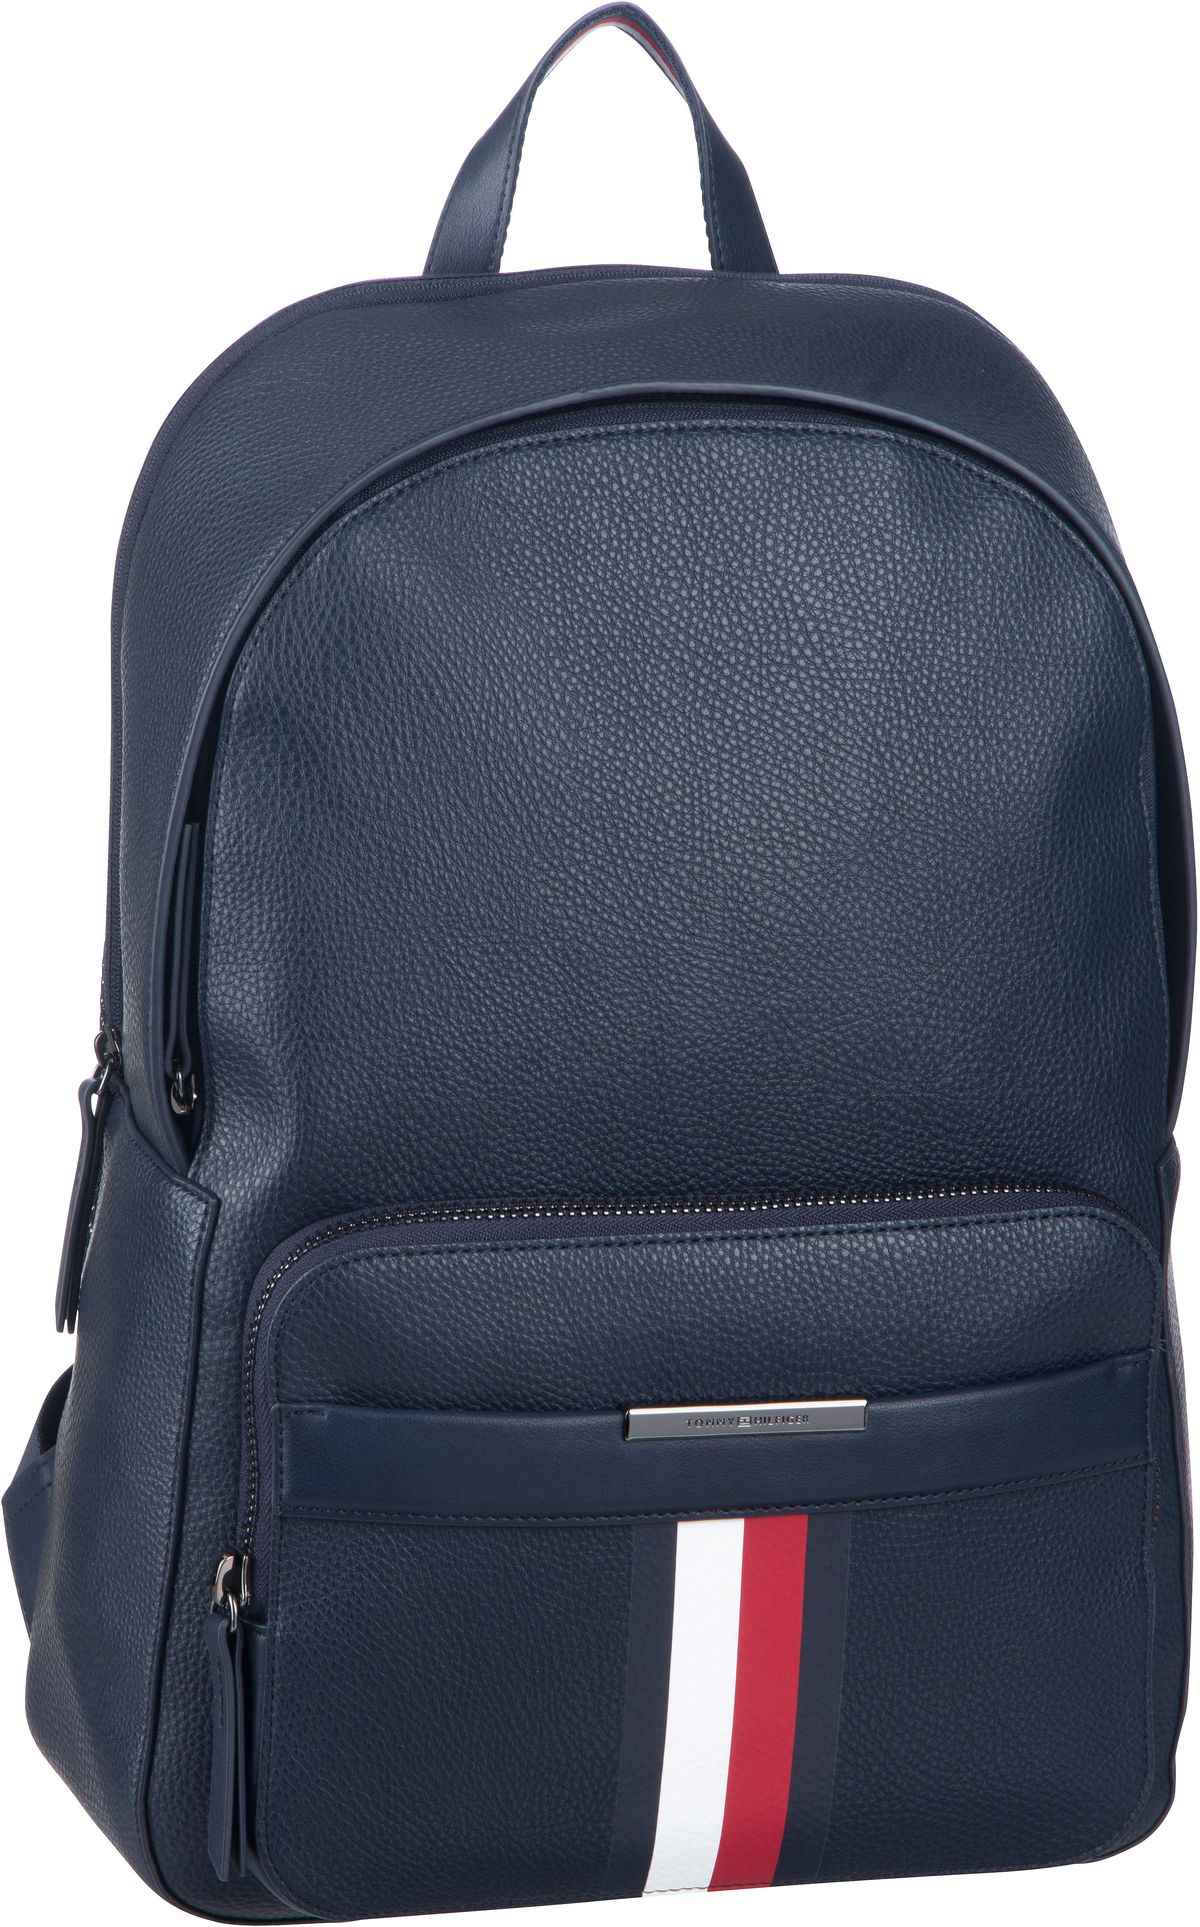 Rucksack / Daypack TH Downtown Corp Backpack 5454 Sky Captain